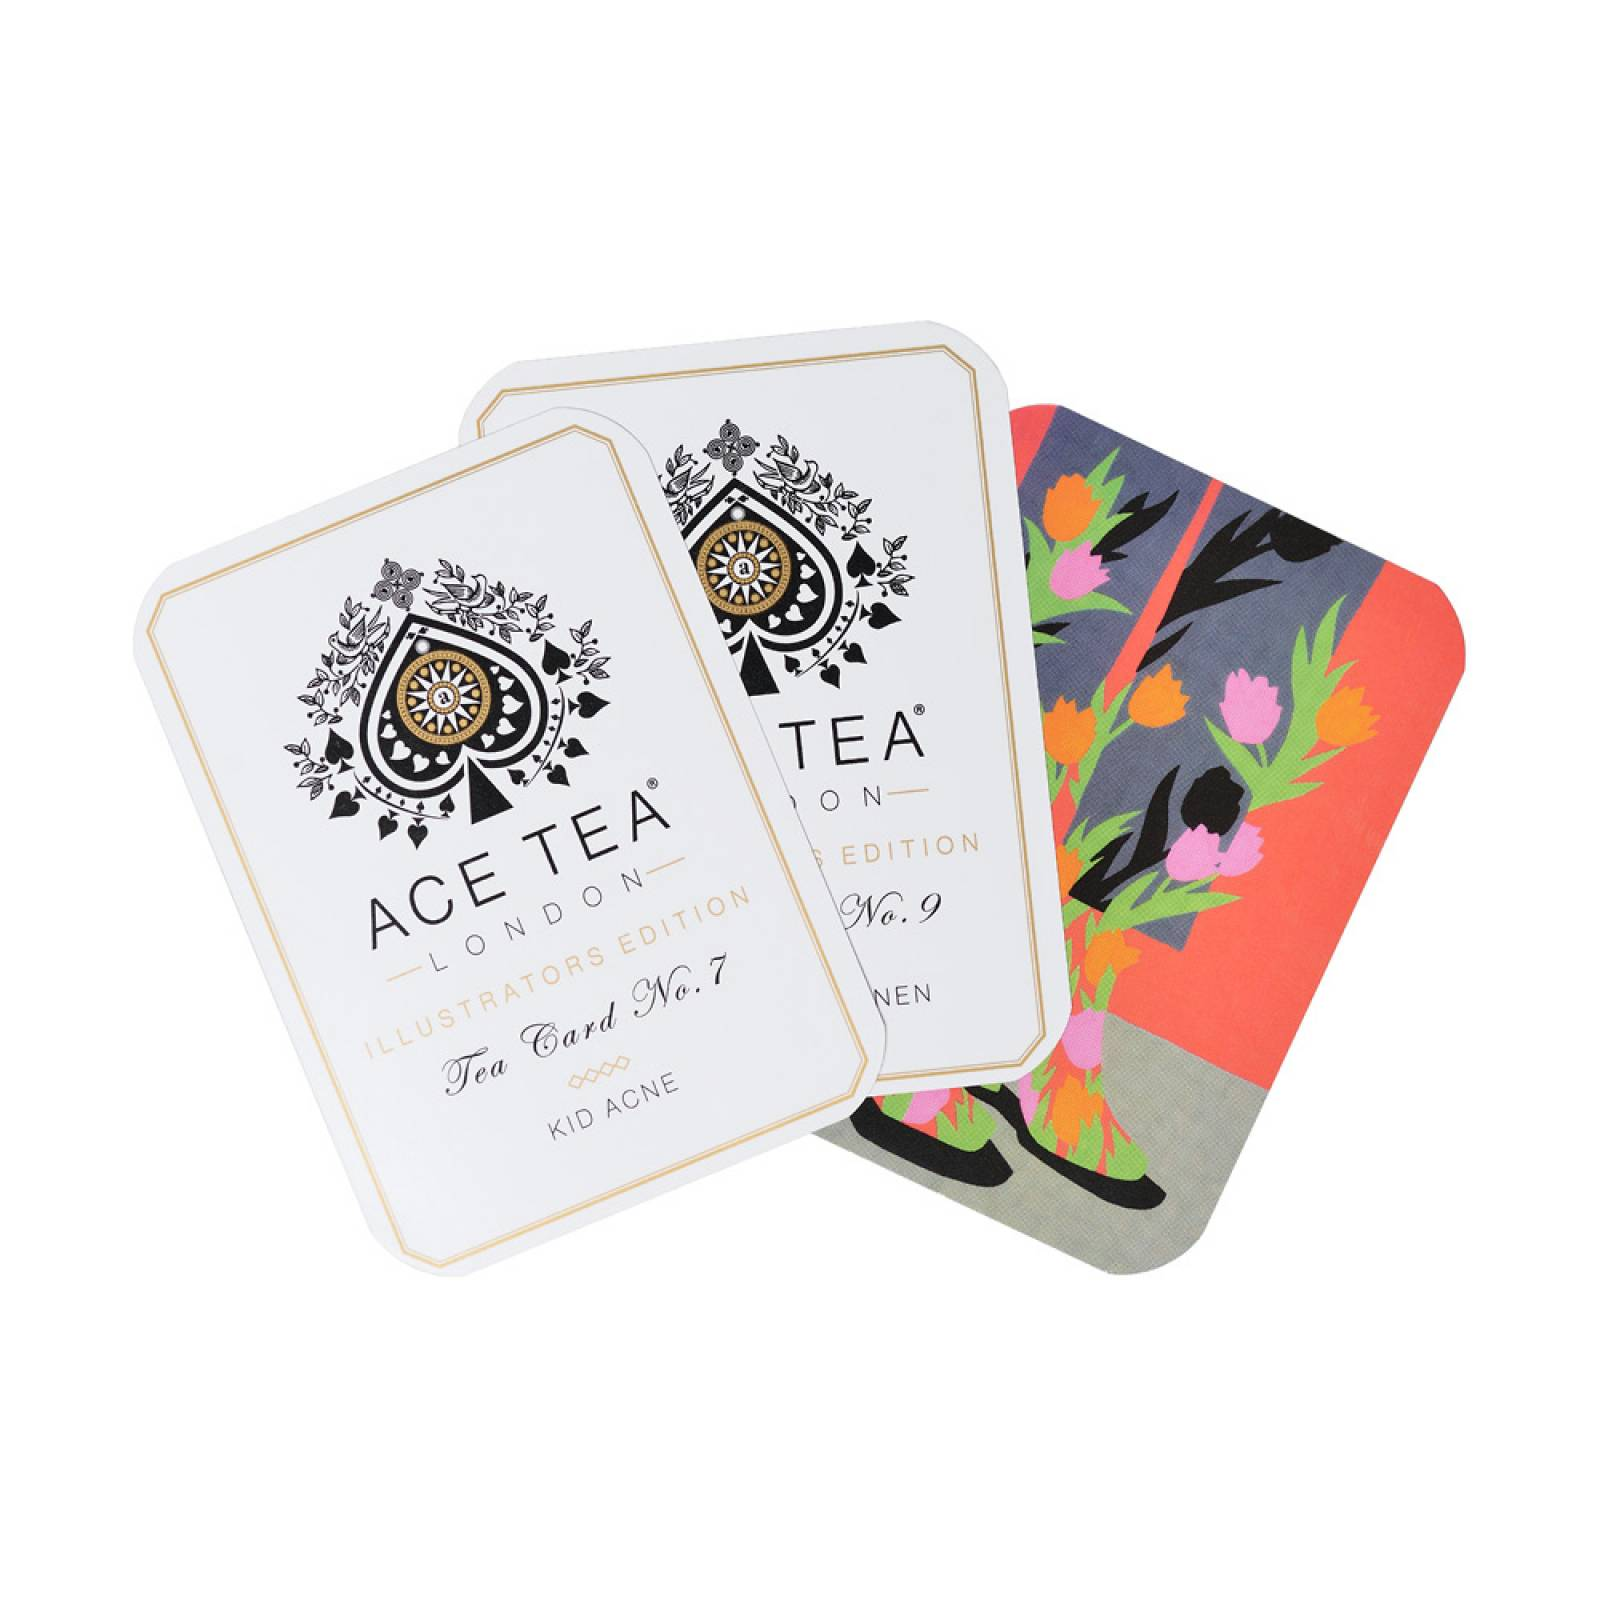 Ace Tea - Lady Rose Tea thumbnails